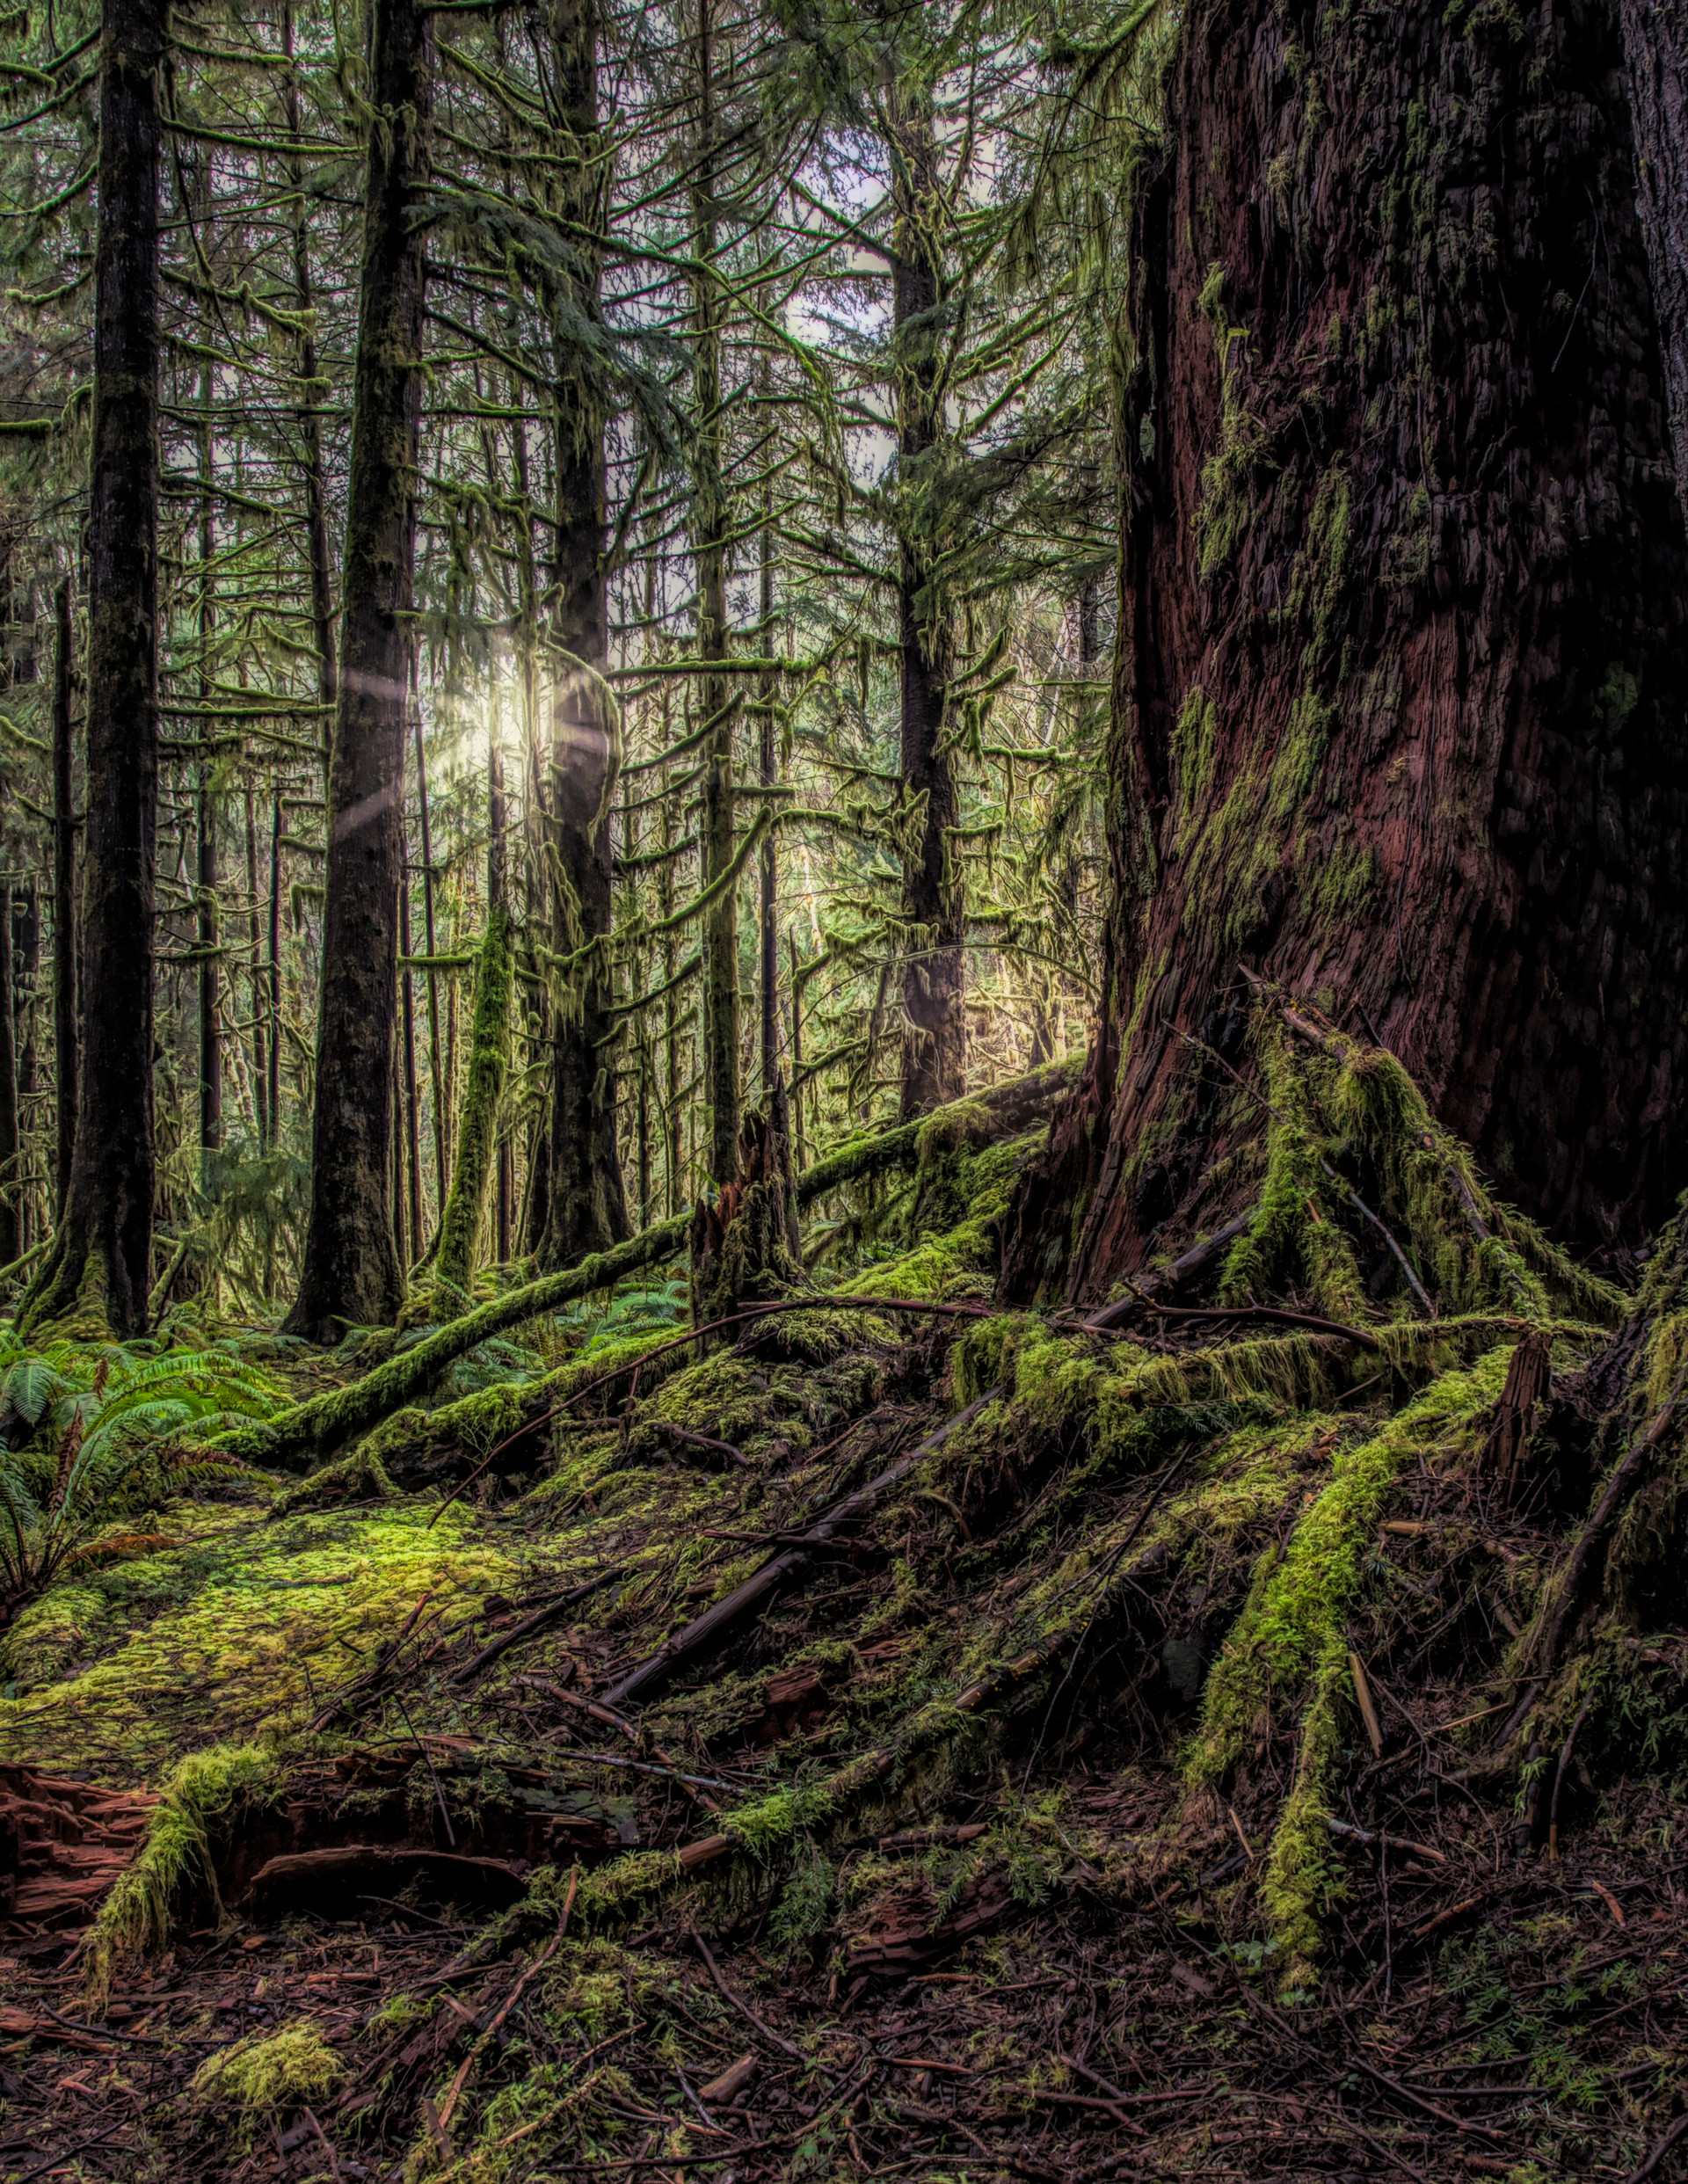 Daybreak, Rainforest Olympic Peninsula, WA